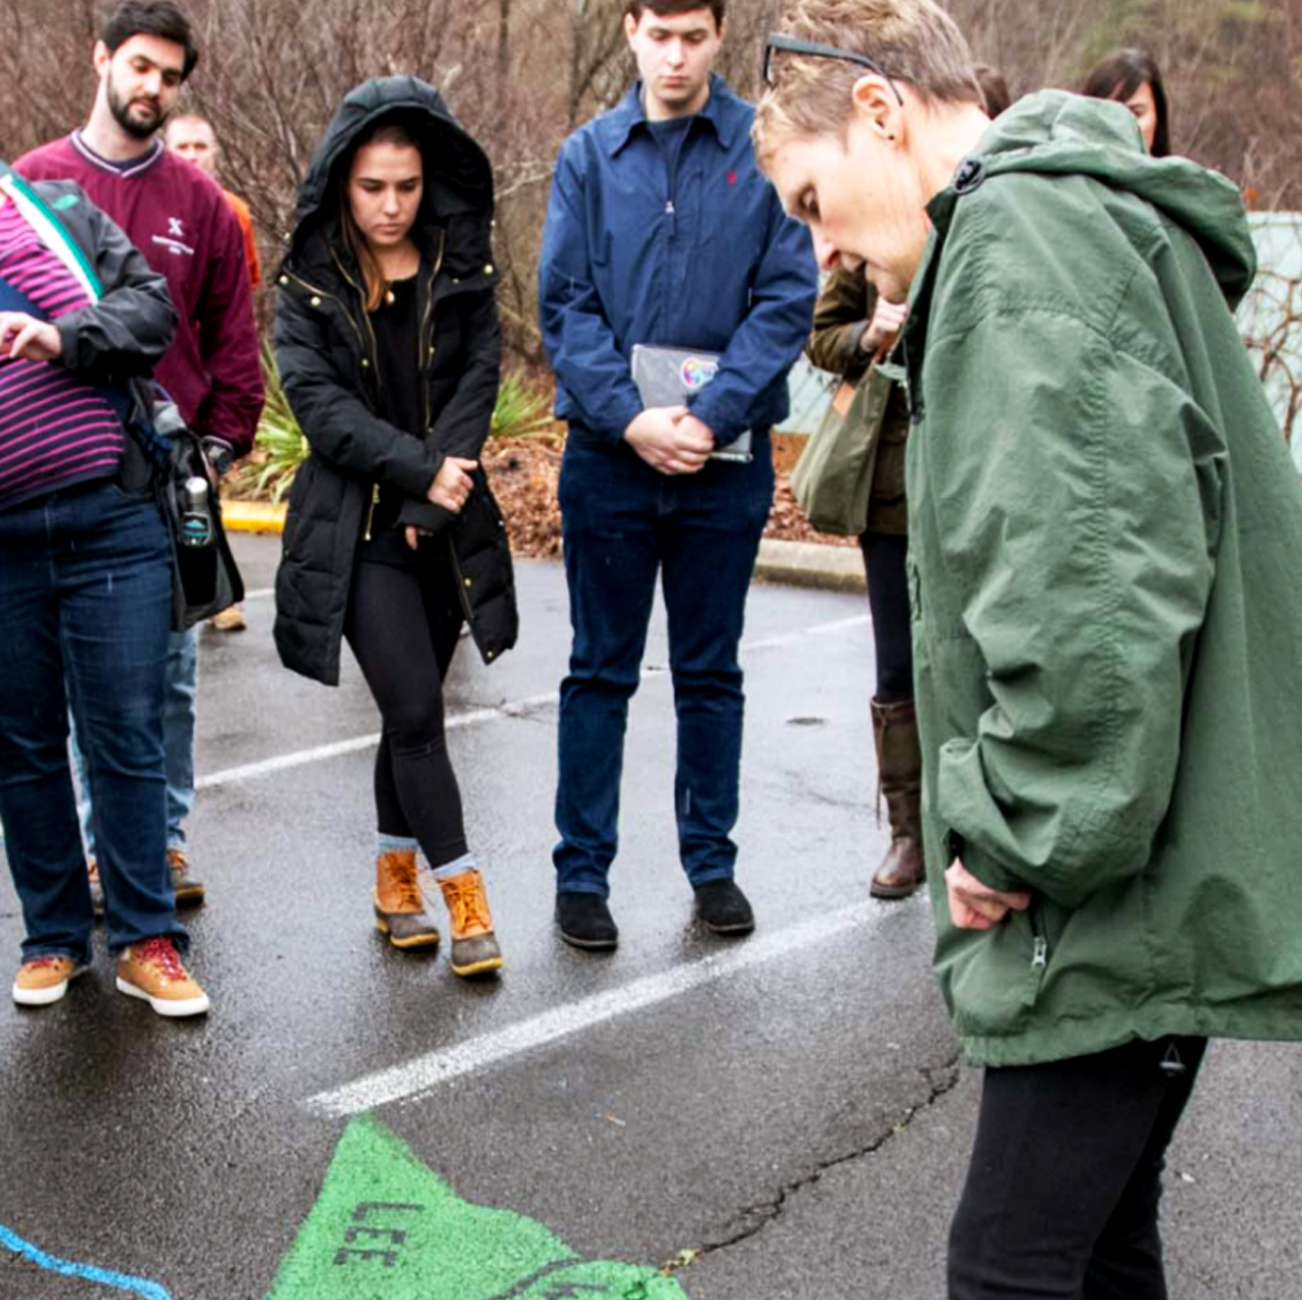 Students standing around looking at a map